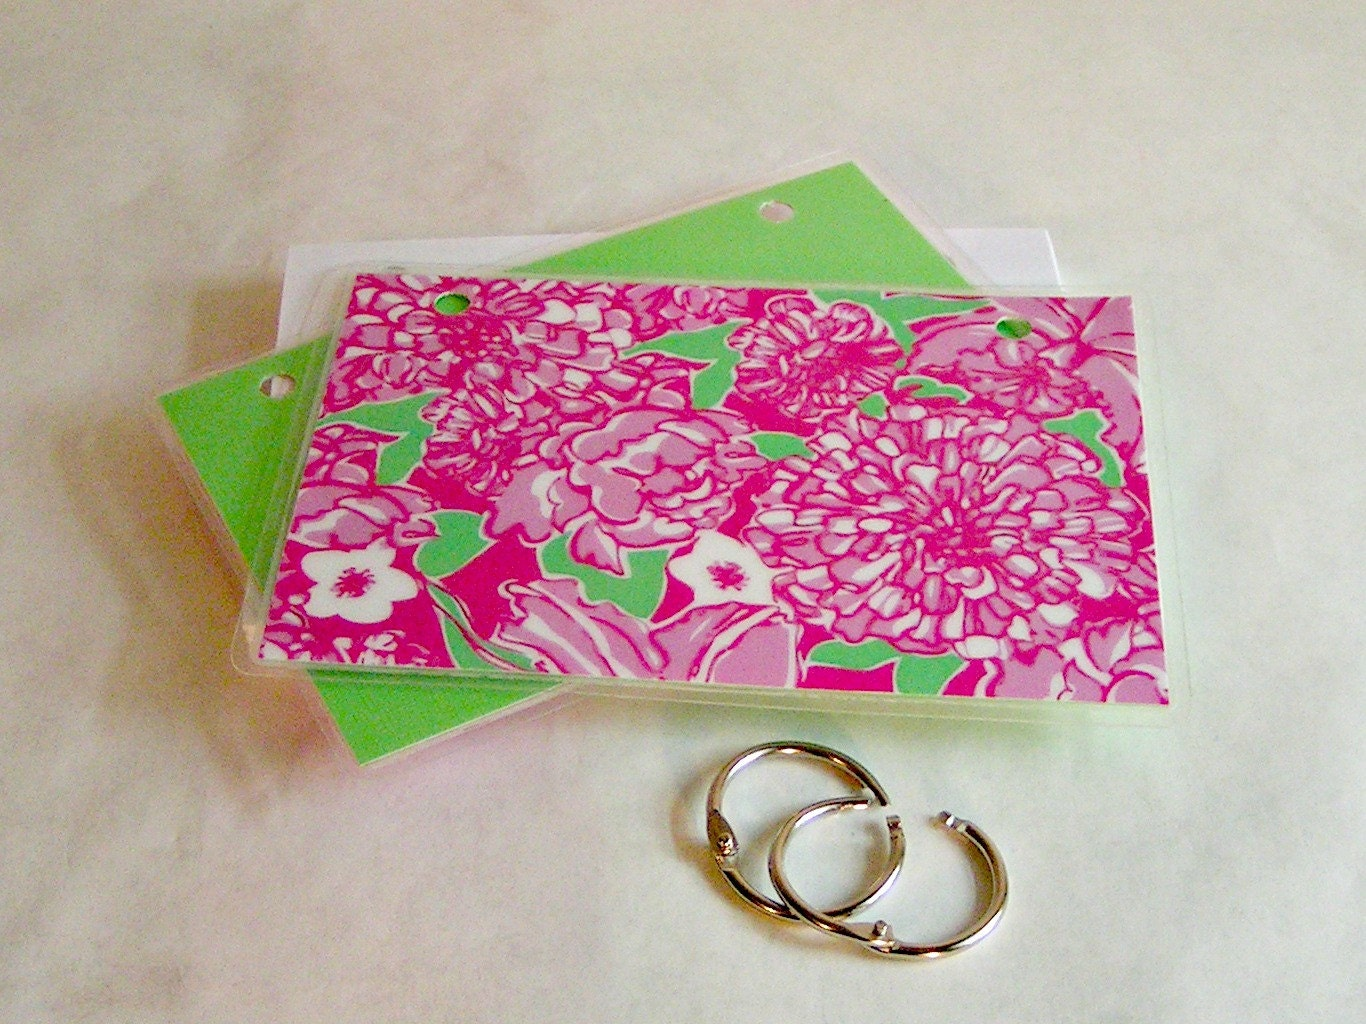 index card binder 3 x 5 or 4 x 6 index card holder by